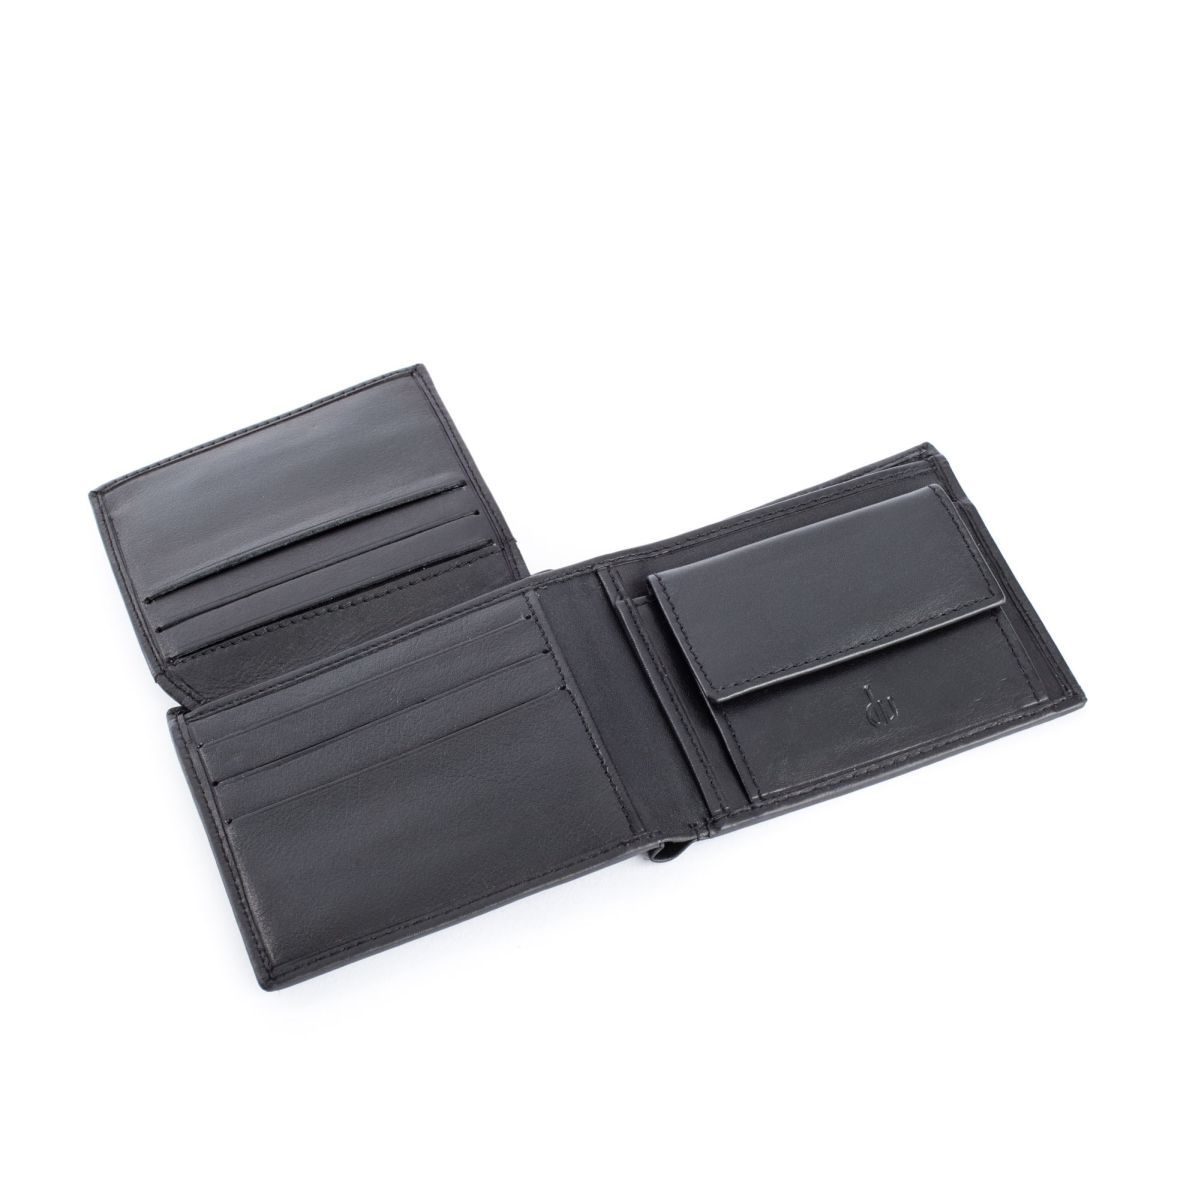 Compact Leather Wallet With Coin Pocket - Black